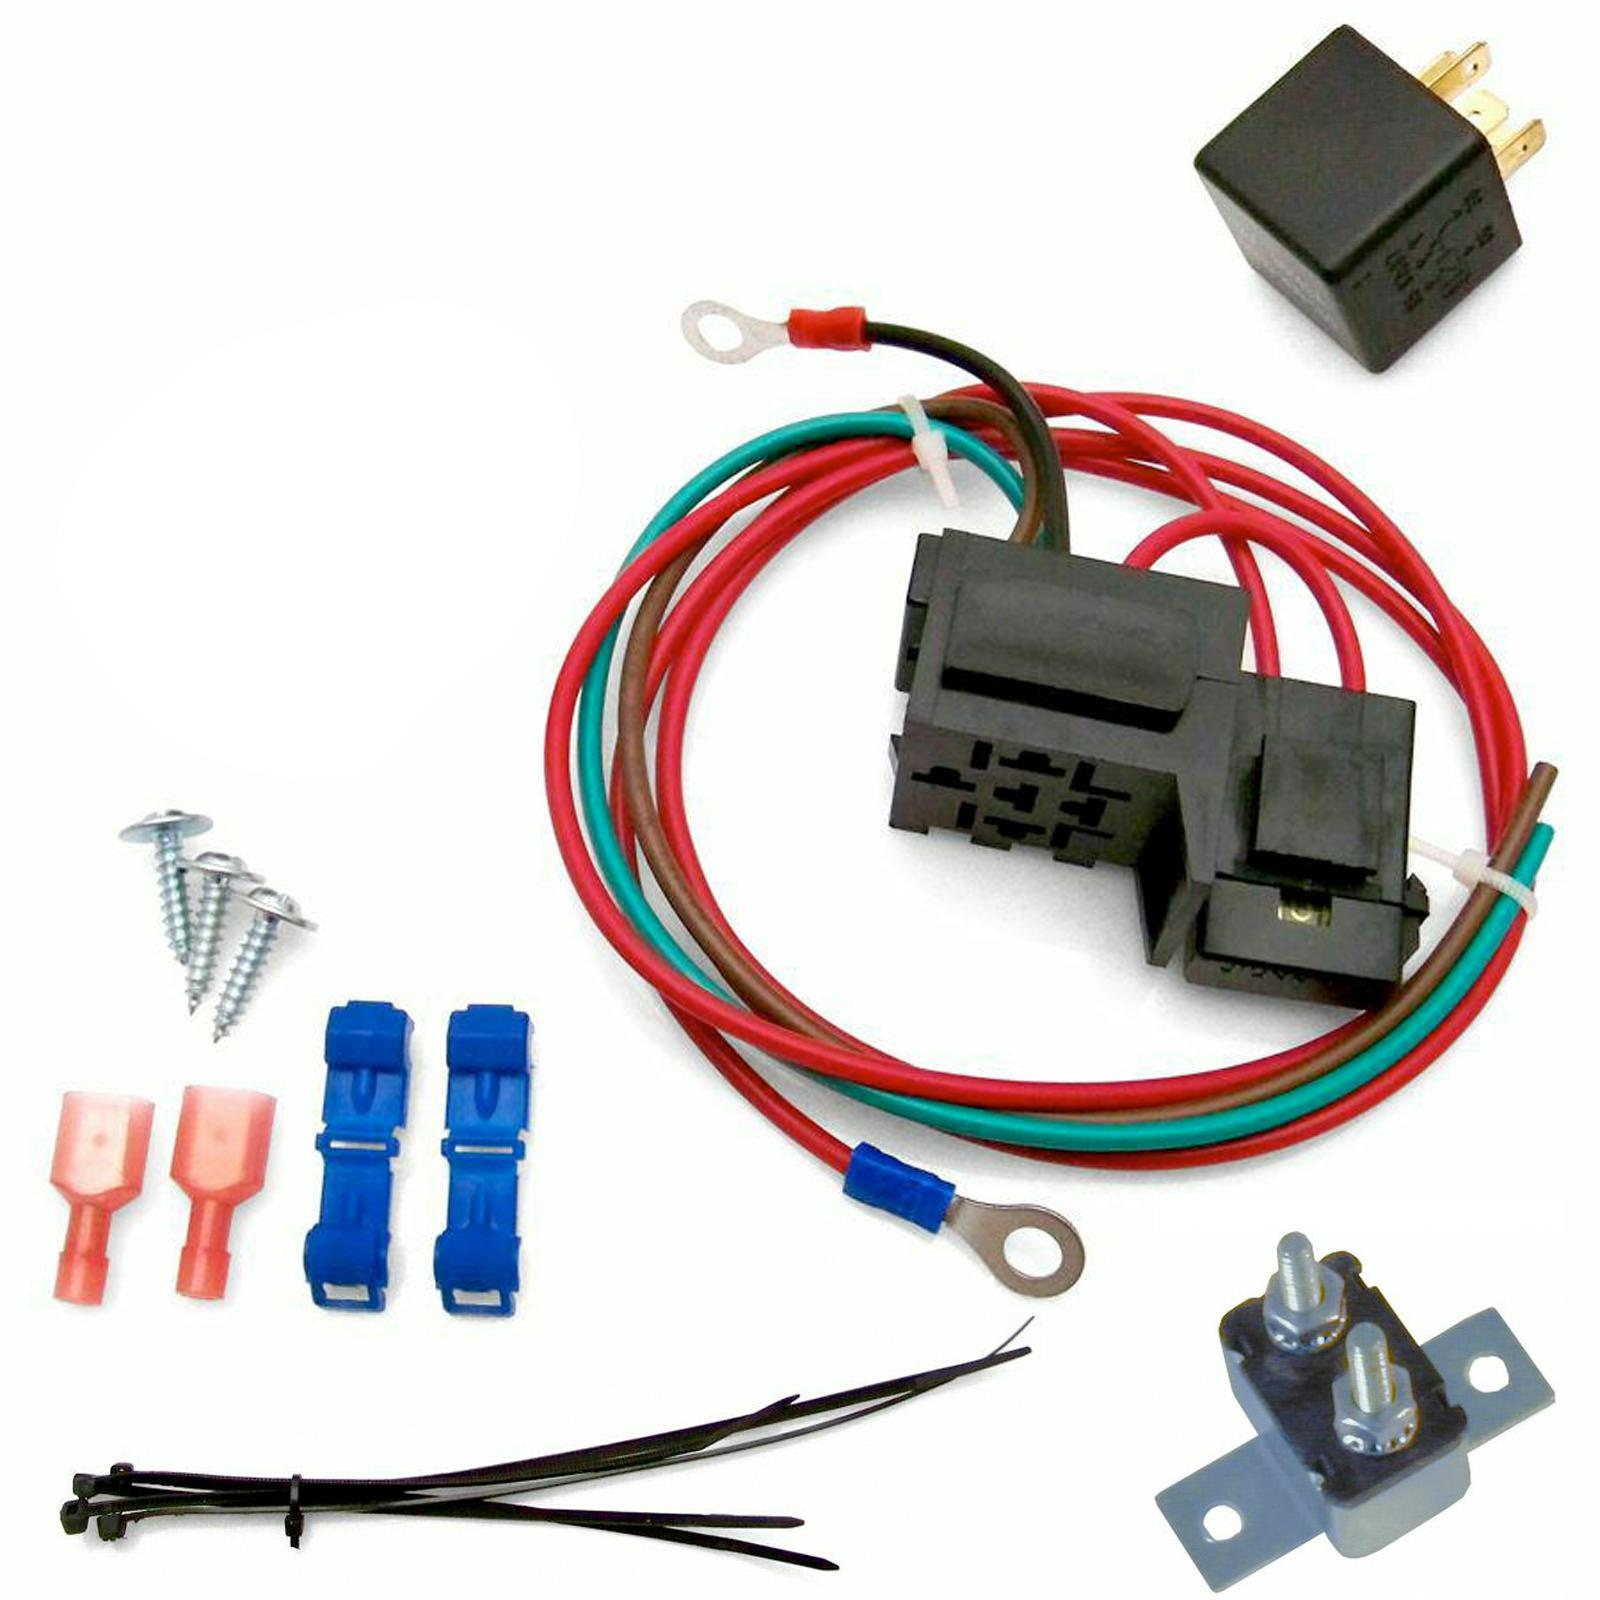 426 hemi chrysler v8 electric fuel relay wiring kit race car parts ebay